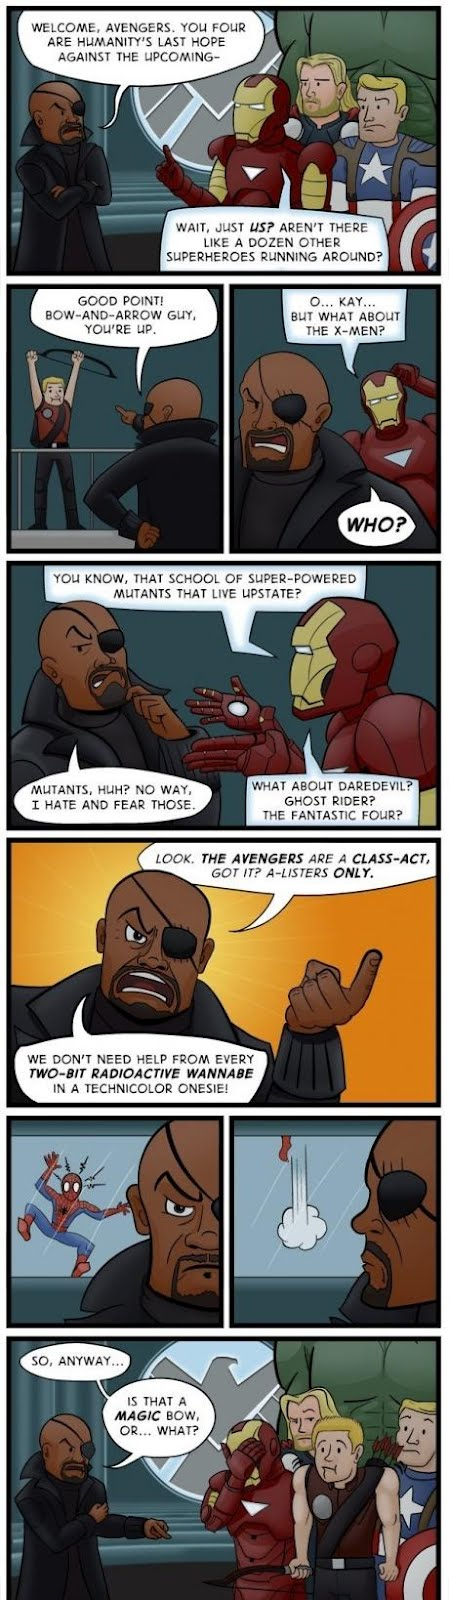 Problem From The Avengers Movie